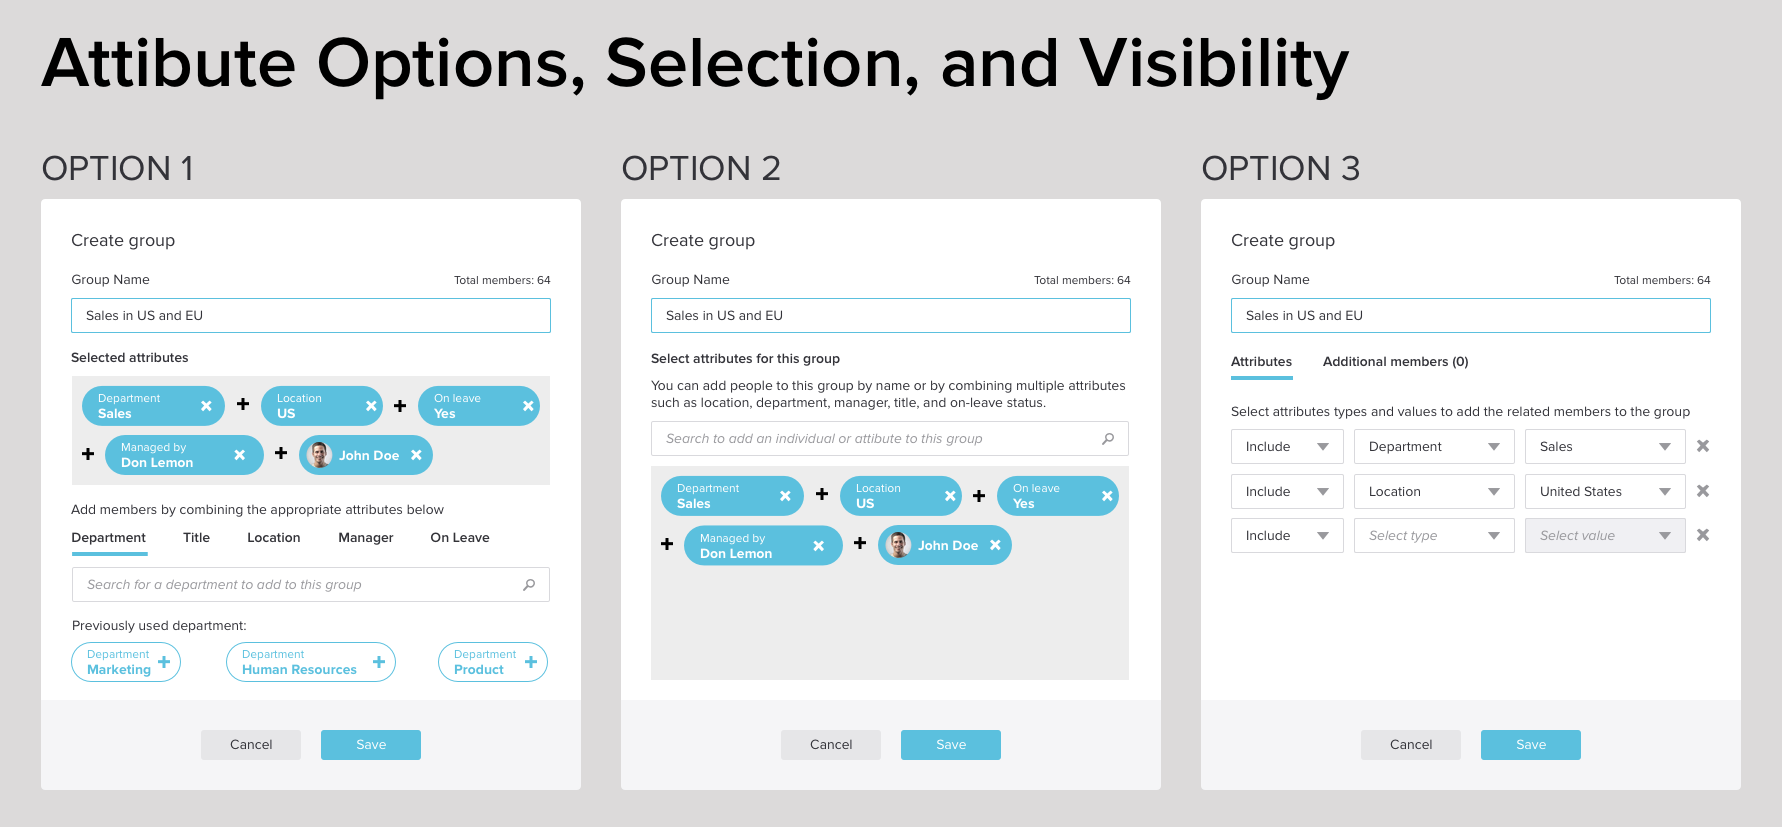 Attribute options, selection, visibilty.png